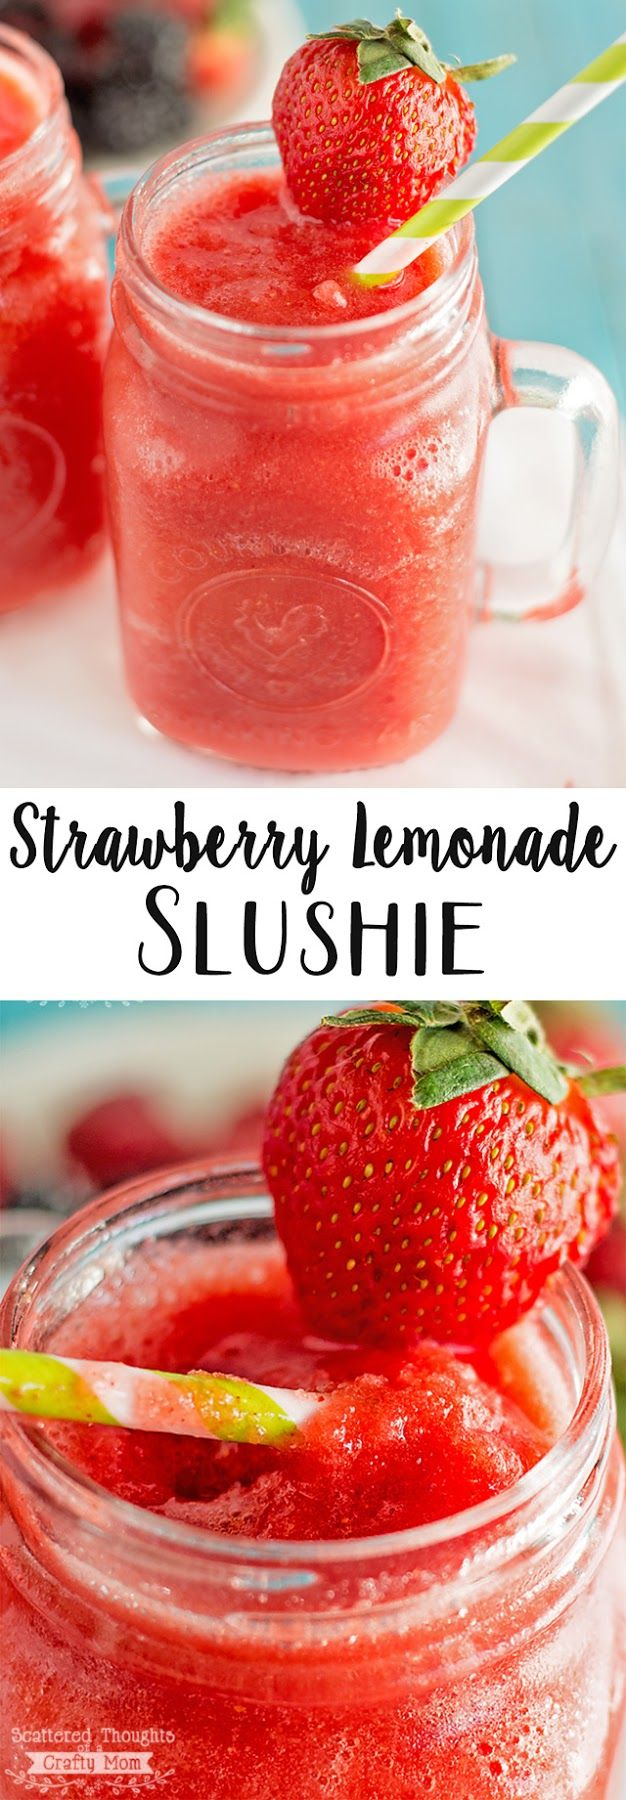 Strawberry Lemonade Slushies:  Ingredients:  12 oz frozen strawberries (about 2 heaping cups).   1-1/2 cups prepared lemonade.   Optional:  1 to 2 tsp of sugar, it will just depend how sweet your strawberries are- give it a taste.    Directions: Add lemonade to the blender and then strawberries.  Blend until you have desired slushie consistency!